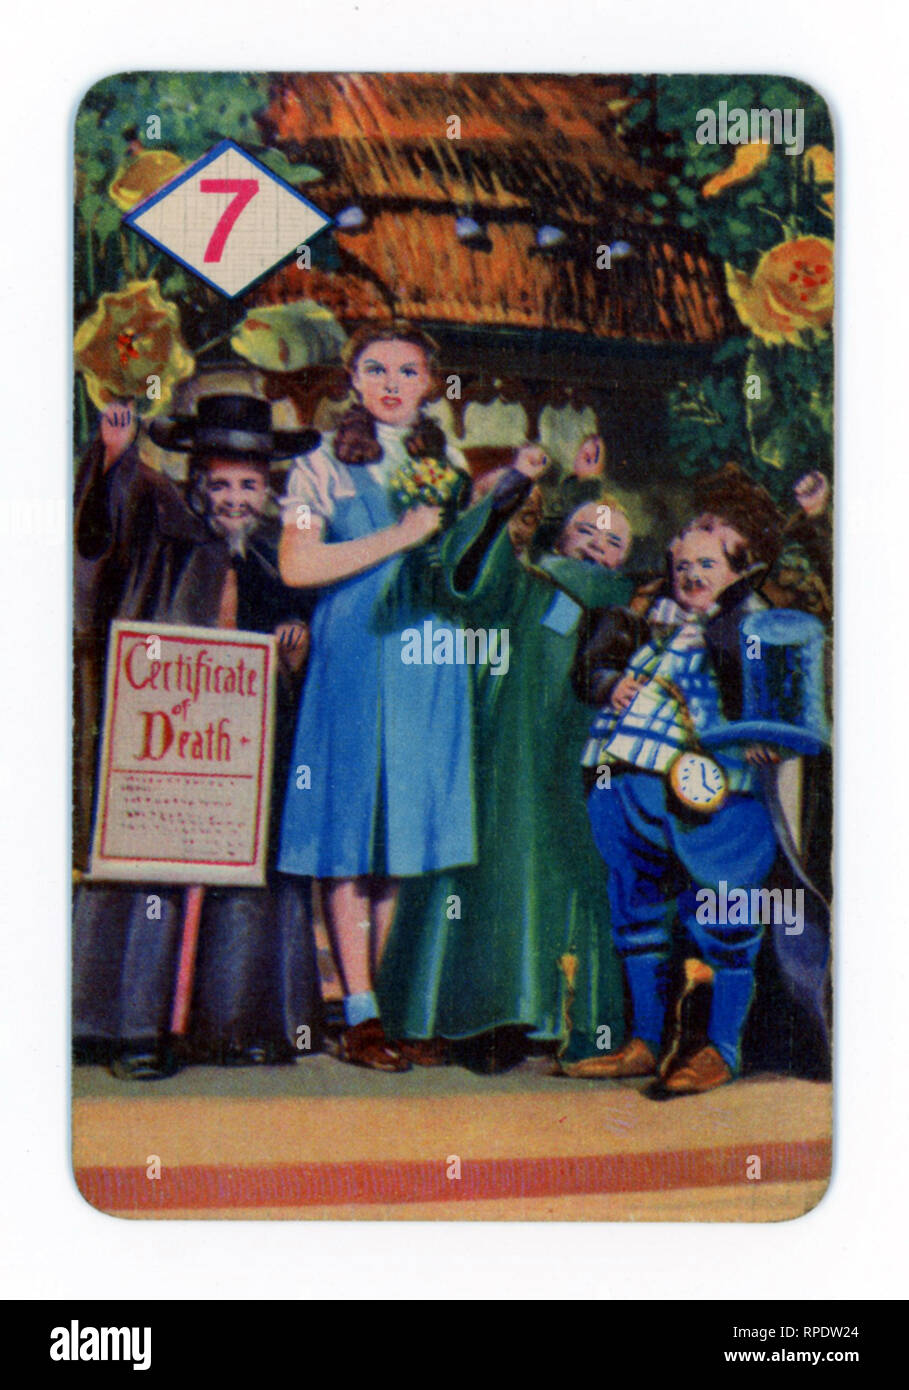 The Wizard of Oz card game produced in London in 1940 by Castell Brothers, Ltd. (Pepys brand) to coincide with the launch of the M.G.M. film in the UK in that year - Stock Image